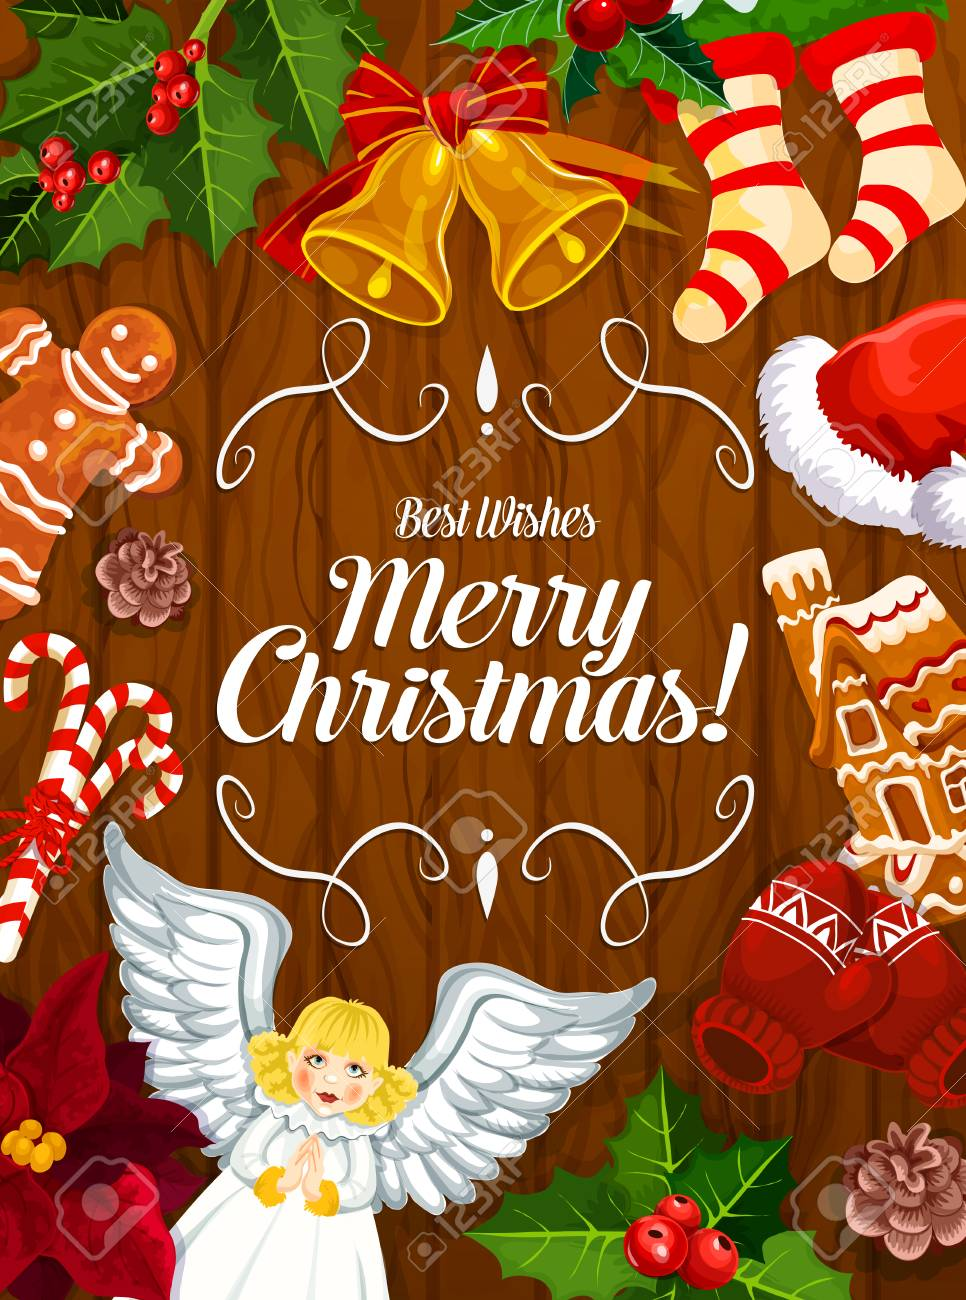 Merry Christmas wishes on wooden banner with winter holiday frame